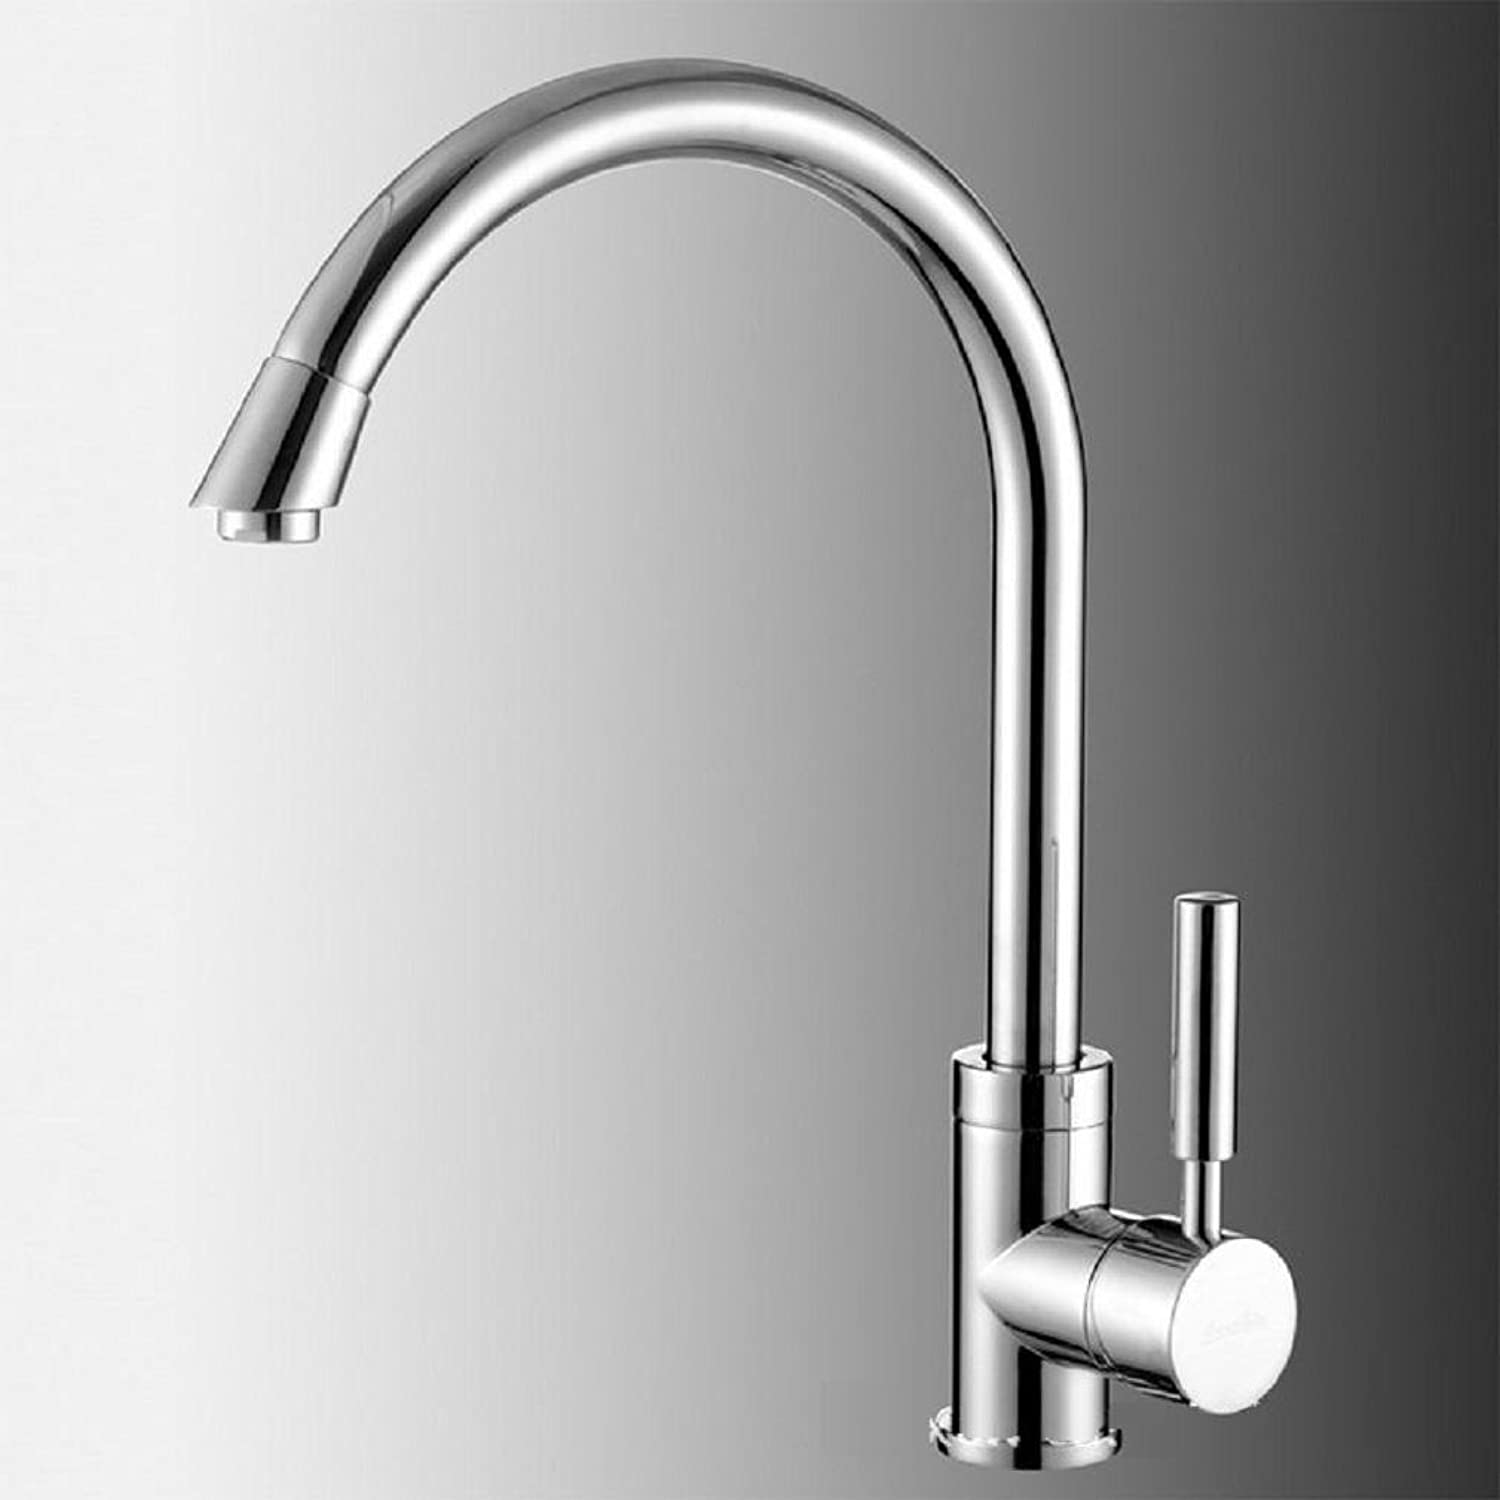 AMZH All Copper Taps Hot And Cold Double Hole Kitchen Sink Faucet Wash Sink Faucet